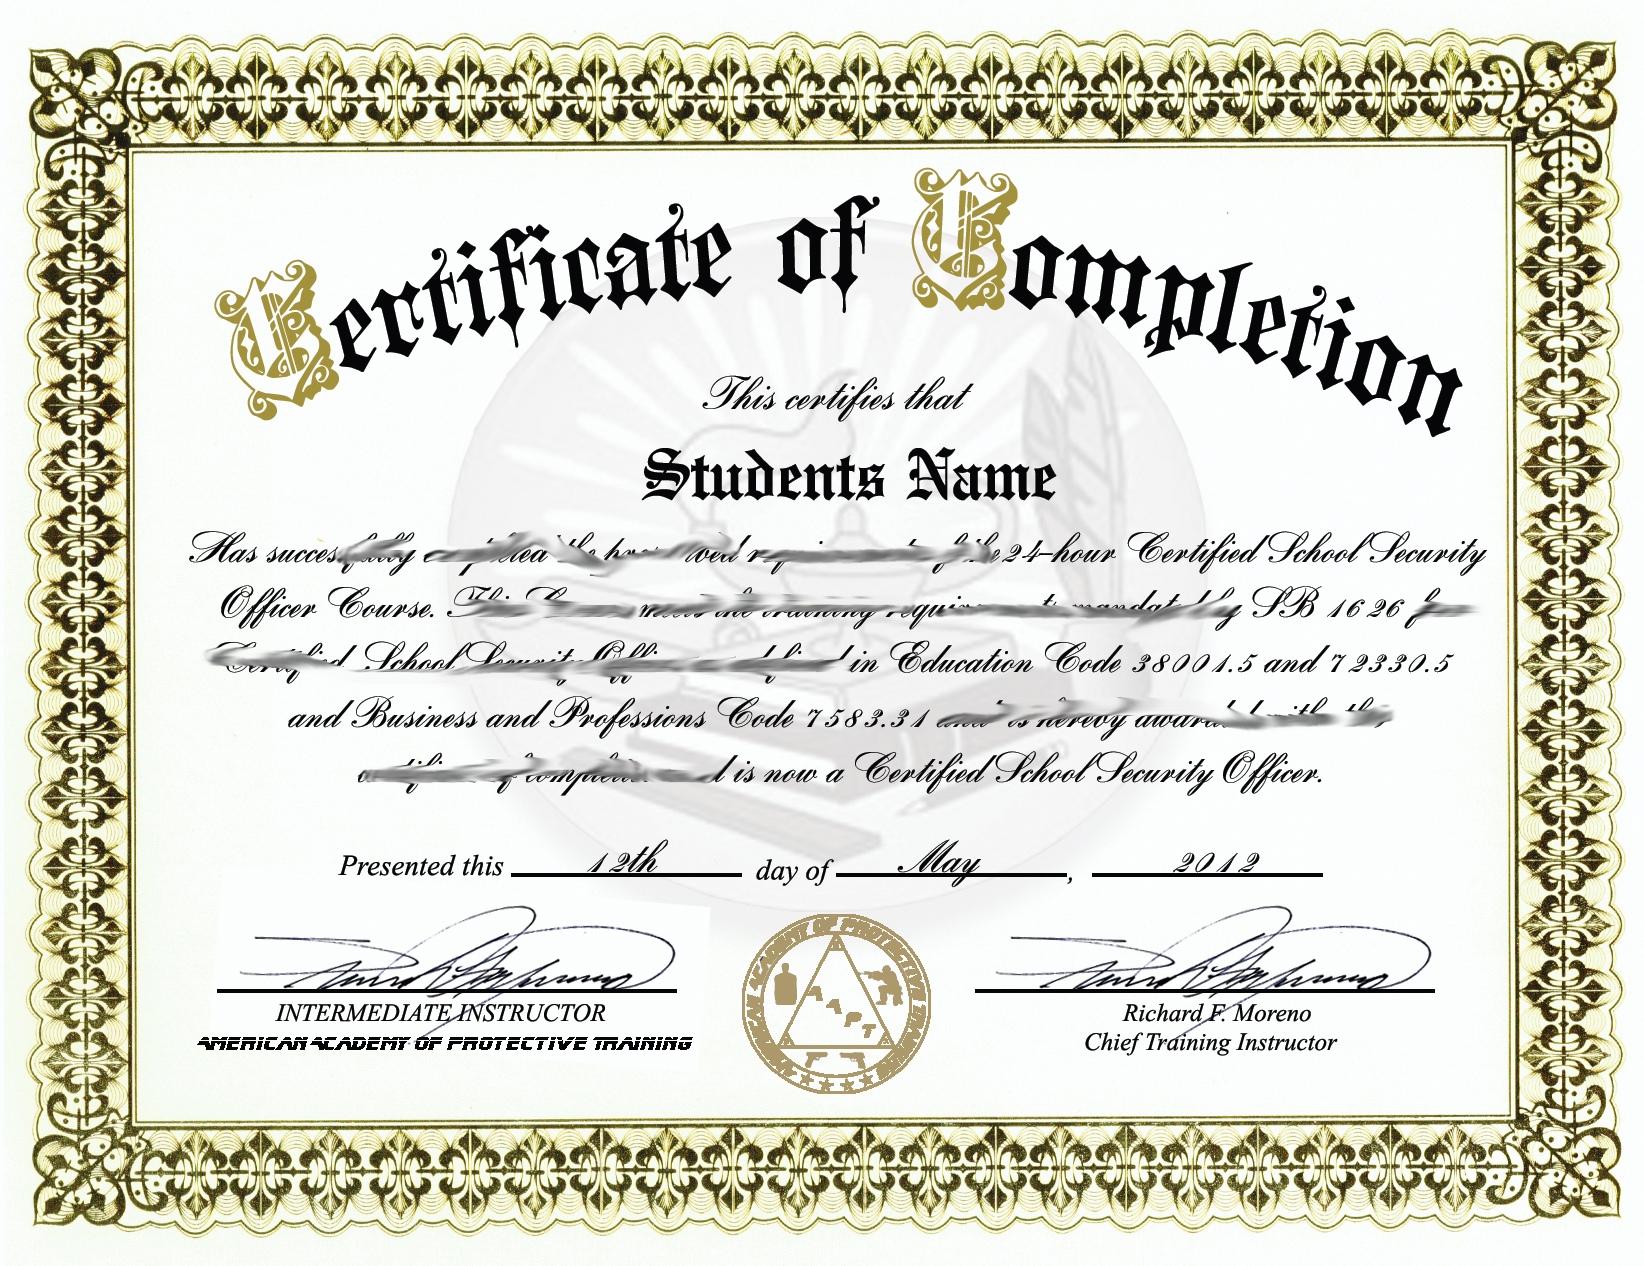 School Security Guard Certification Sb1626 That Is Required By Any Usd